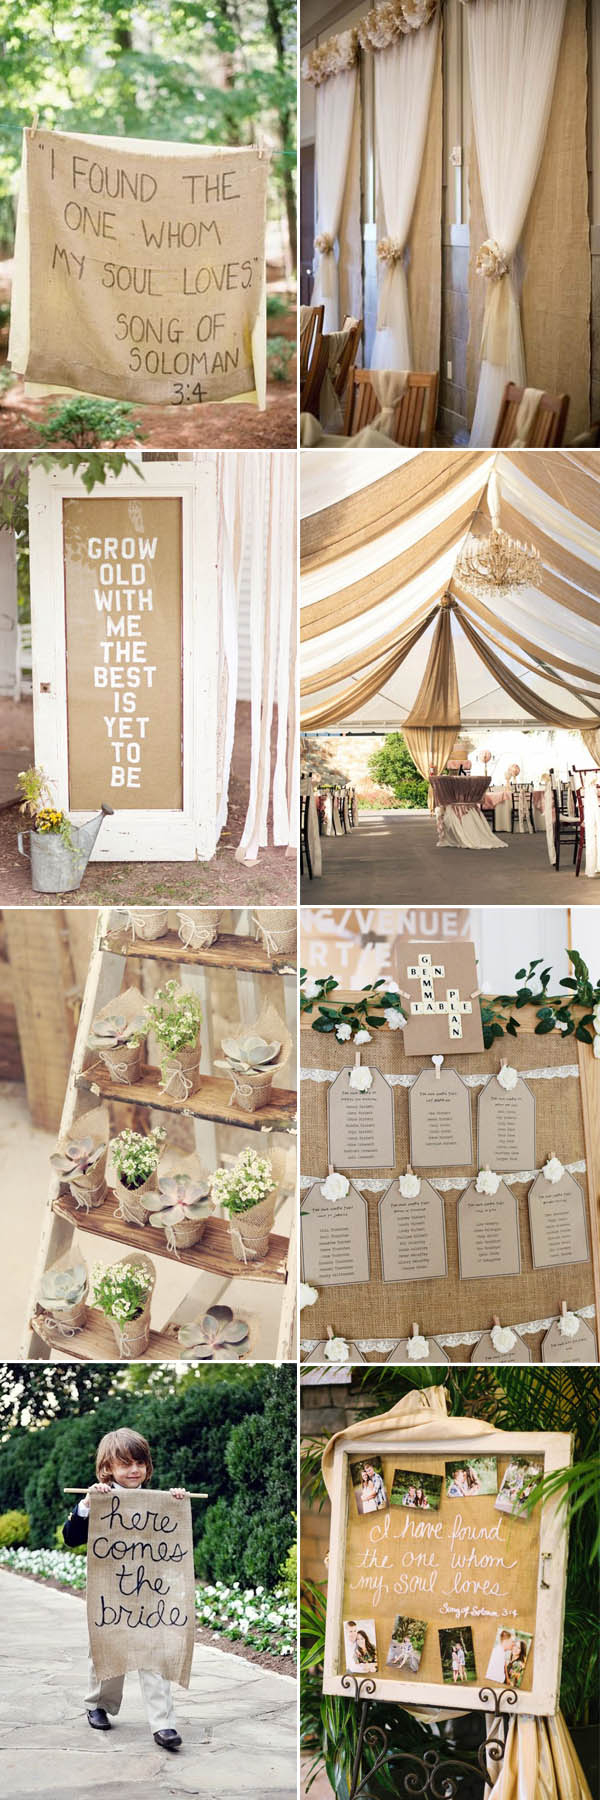 Upcycled Wedding Decorations The Most Complete Burlap Rustic Wedding Ideas For Your Inspiration